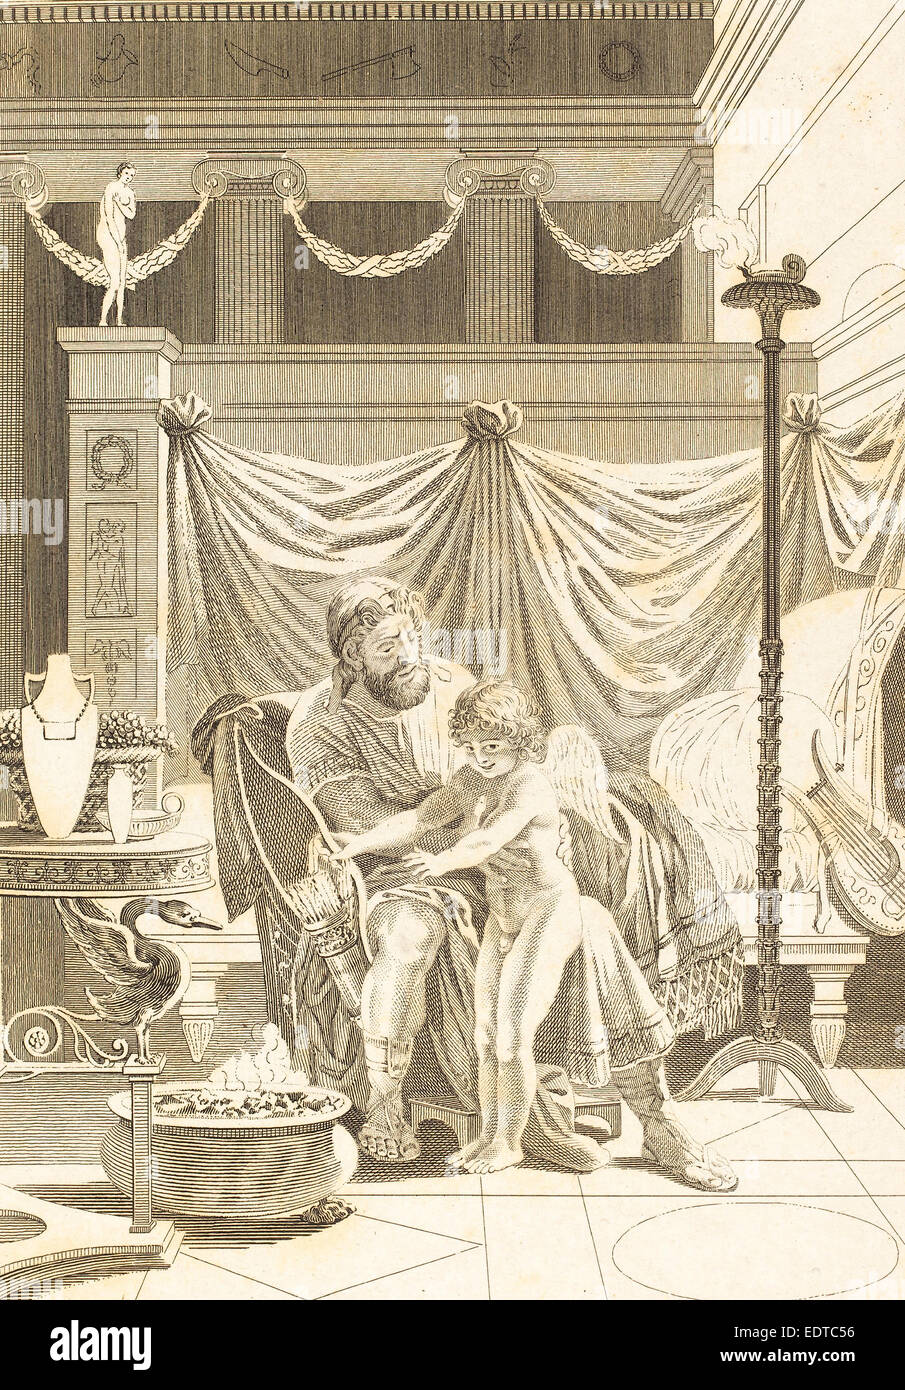 French 18th Century, Autre imitation: L'amour mouille, etching - Stock Image